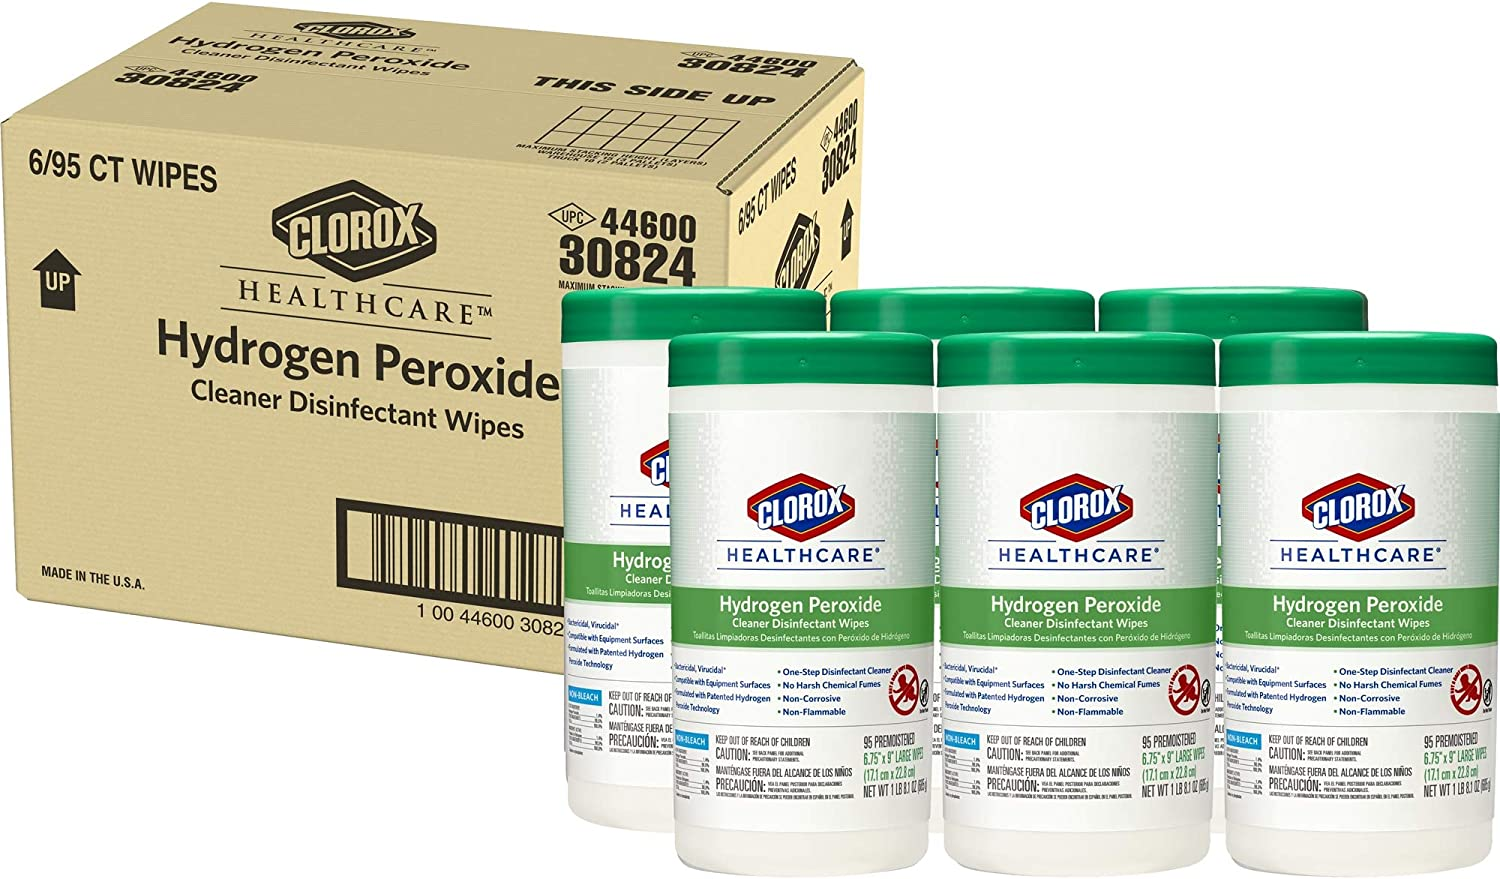 Clorox Healthcare Hydrogen Peroxide Cleaner Disinfectant Wipes, 95 Count Canister - Pack of 6 (30824)